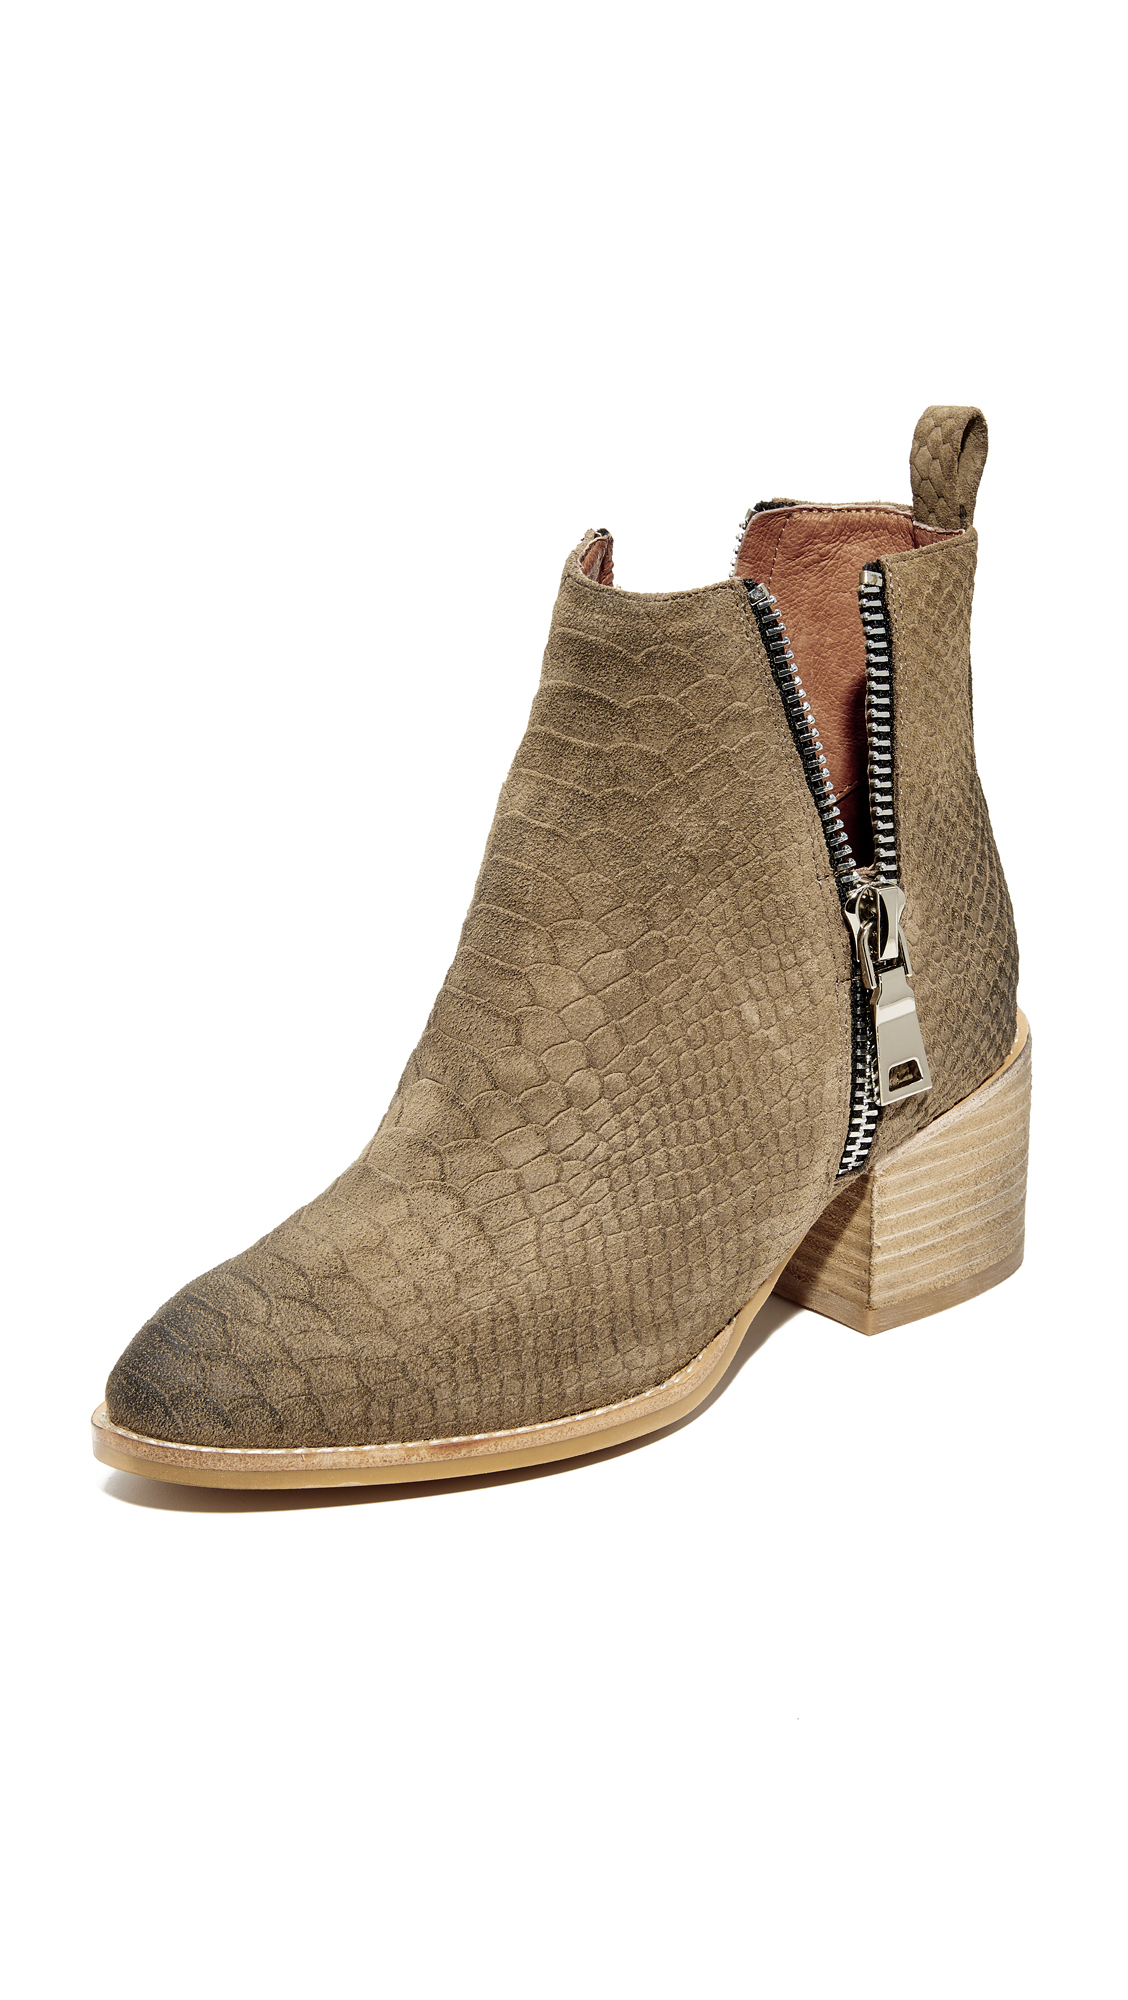 Jeffrey Campbell Boone Stacked Heel Booties - Khaki